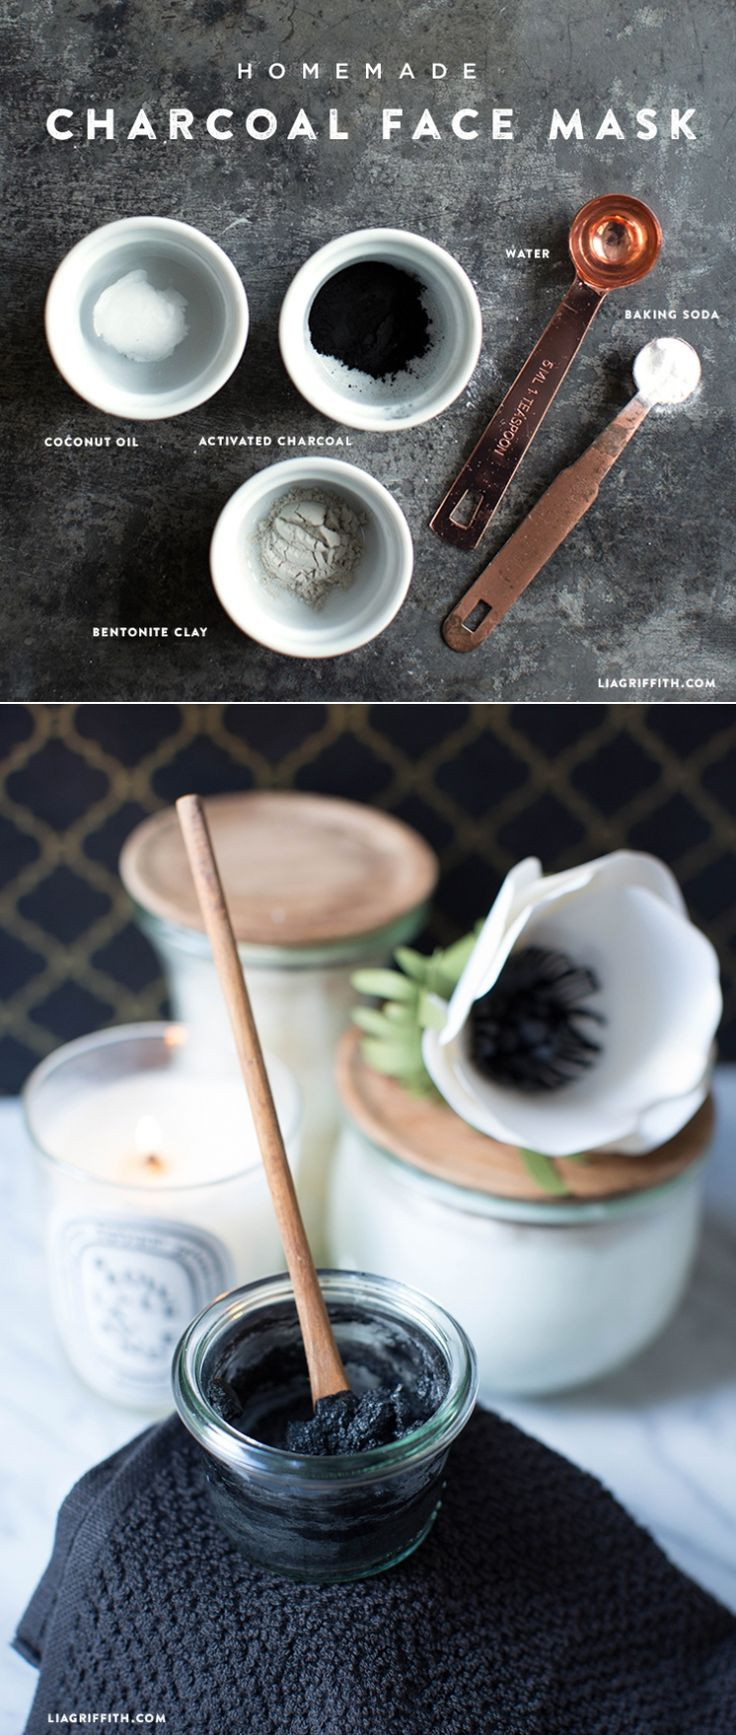 Charcoal Face Mask DIY  Homemade Charcoal Face Mask Recipe